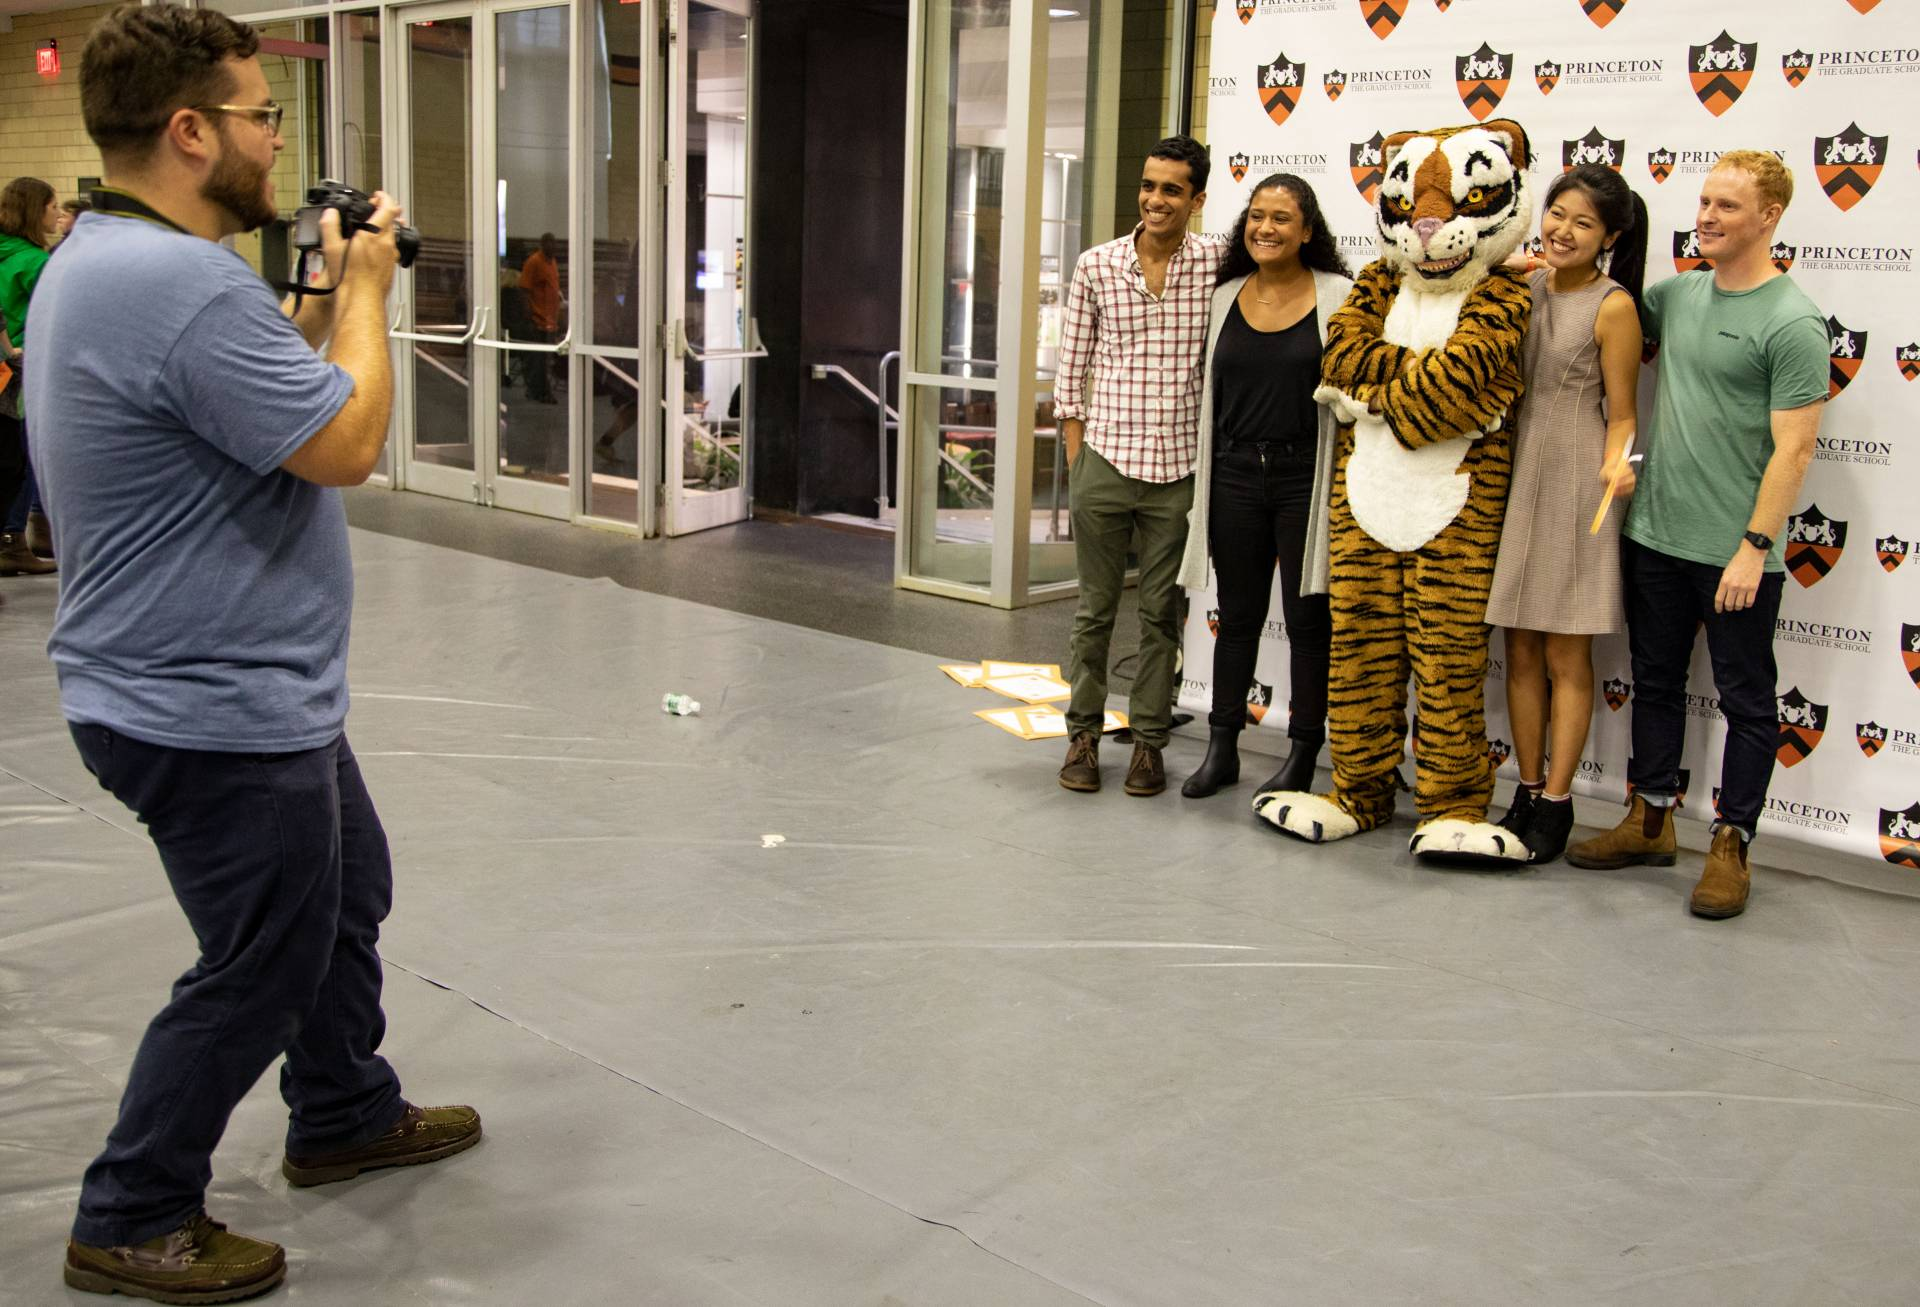 Graduate students posing with Princeton tiger mascot